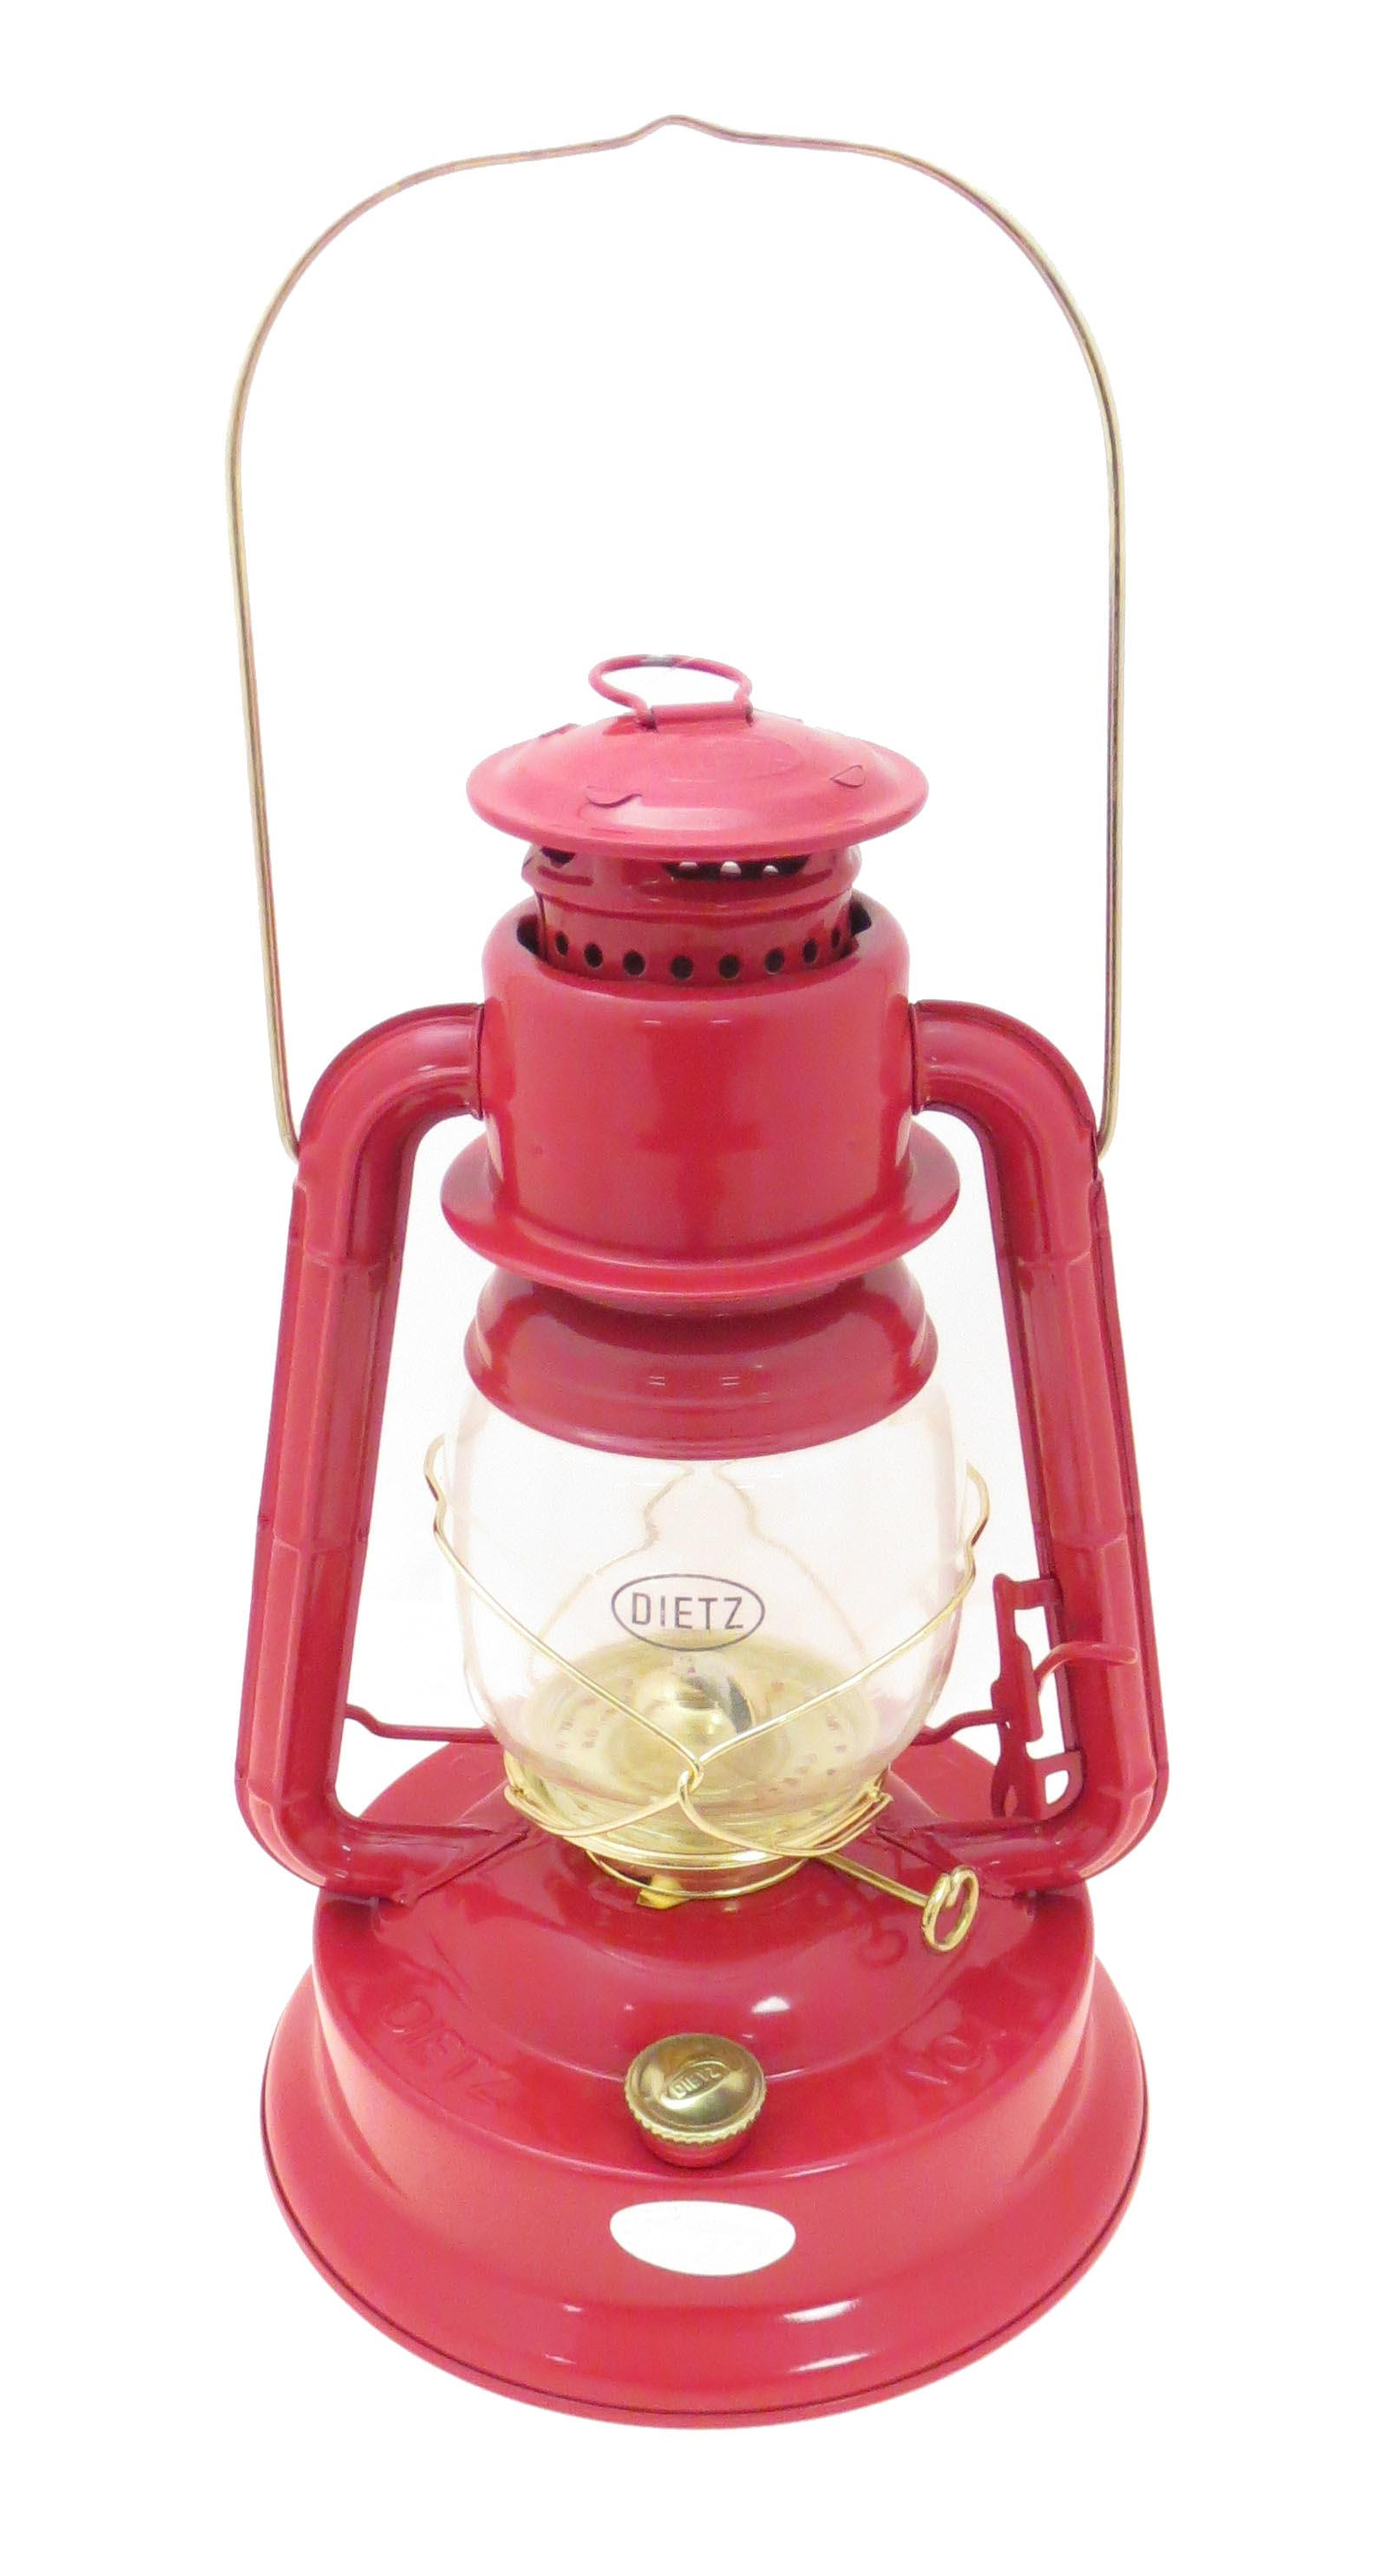 Dietz® #1  Little Wizard  oil lantern Red Paint with Gold Trim. 12  ht. X 7.75  wide burns 45 hours on 36 oz. of fuel. 9 candlepower comes with 5/8  wick.  sc 1 st  Bu0026P L& Supply & Red and Gold Dietz Brand #1 Little Wizard Oil Lantern 69860 | Bu0026P ...